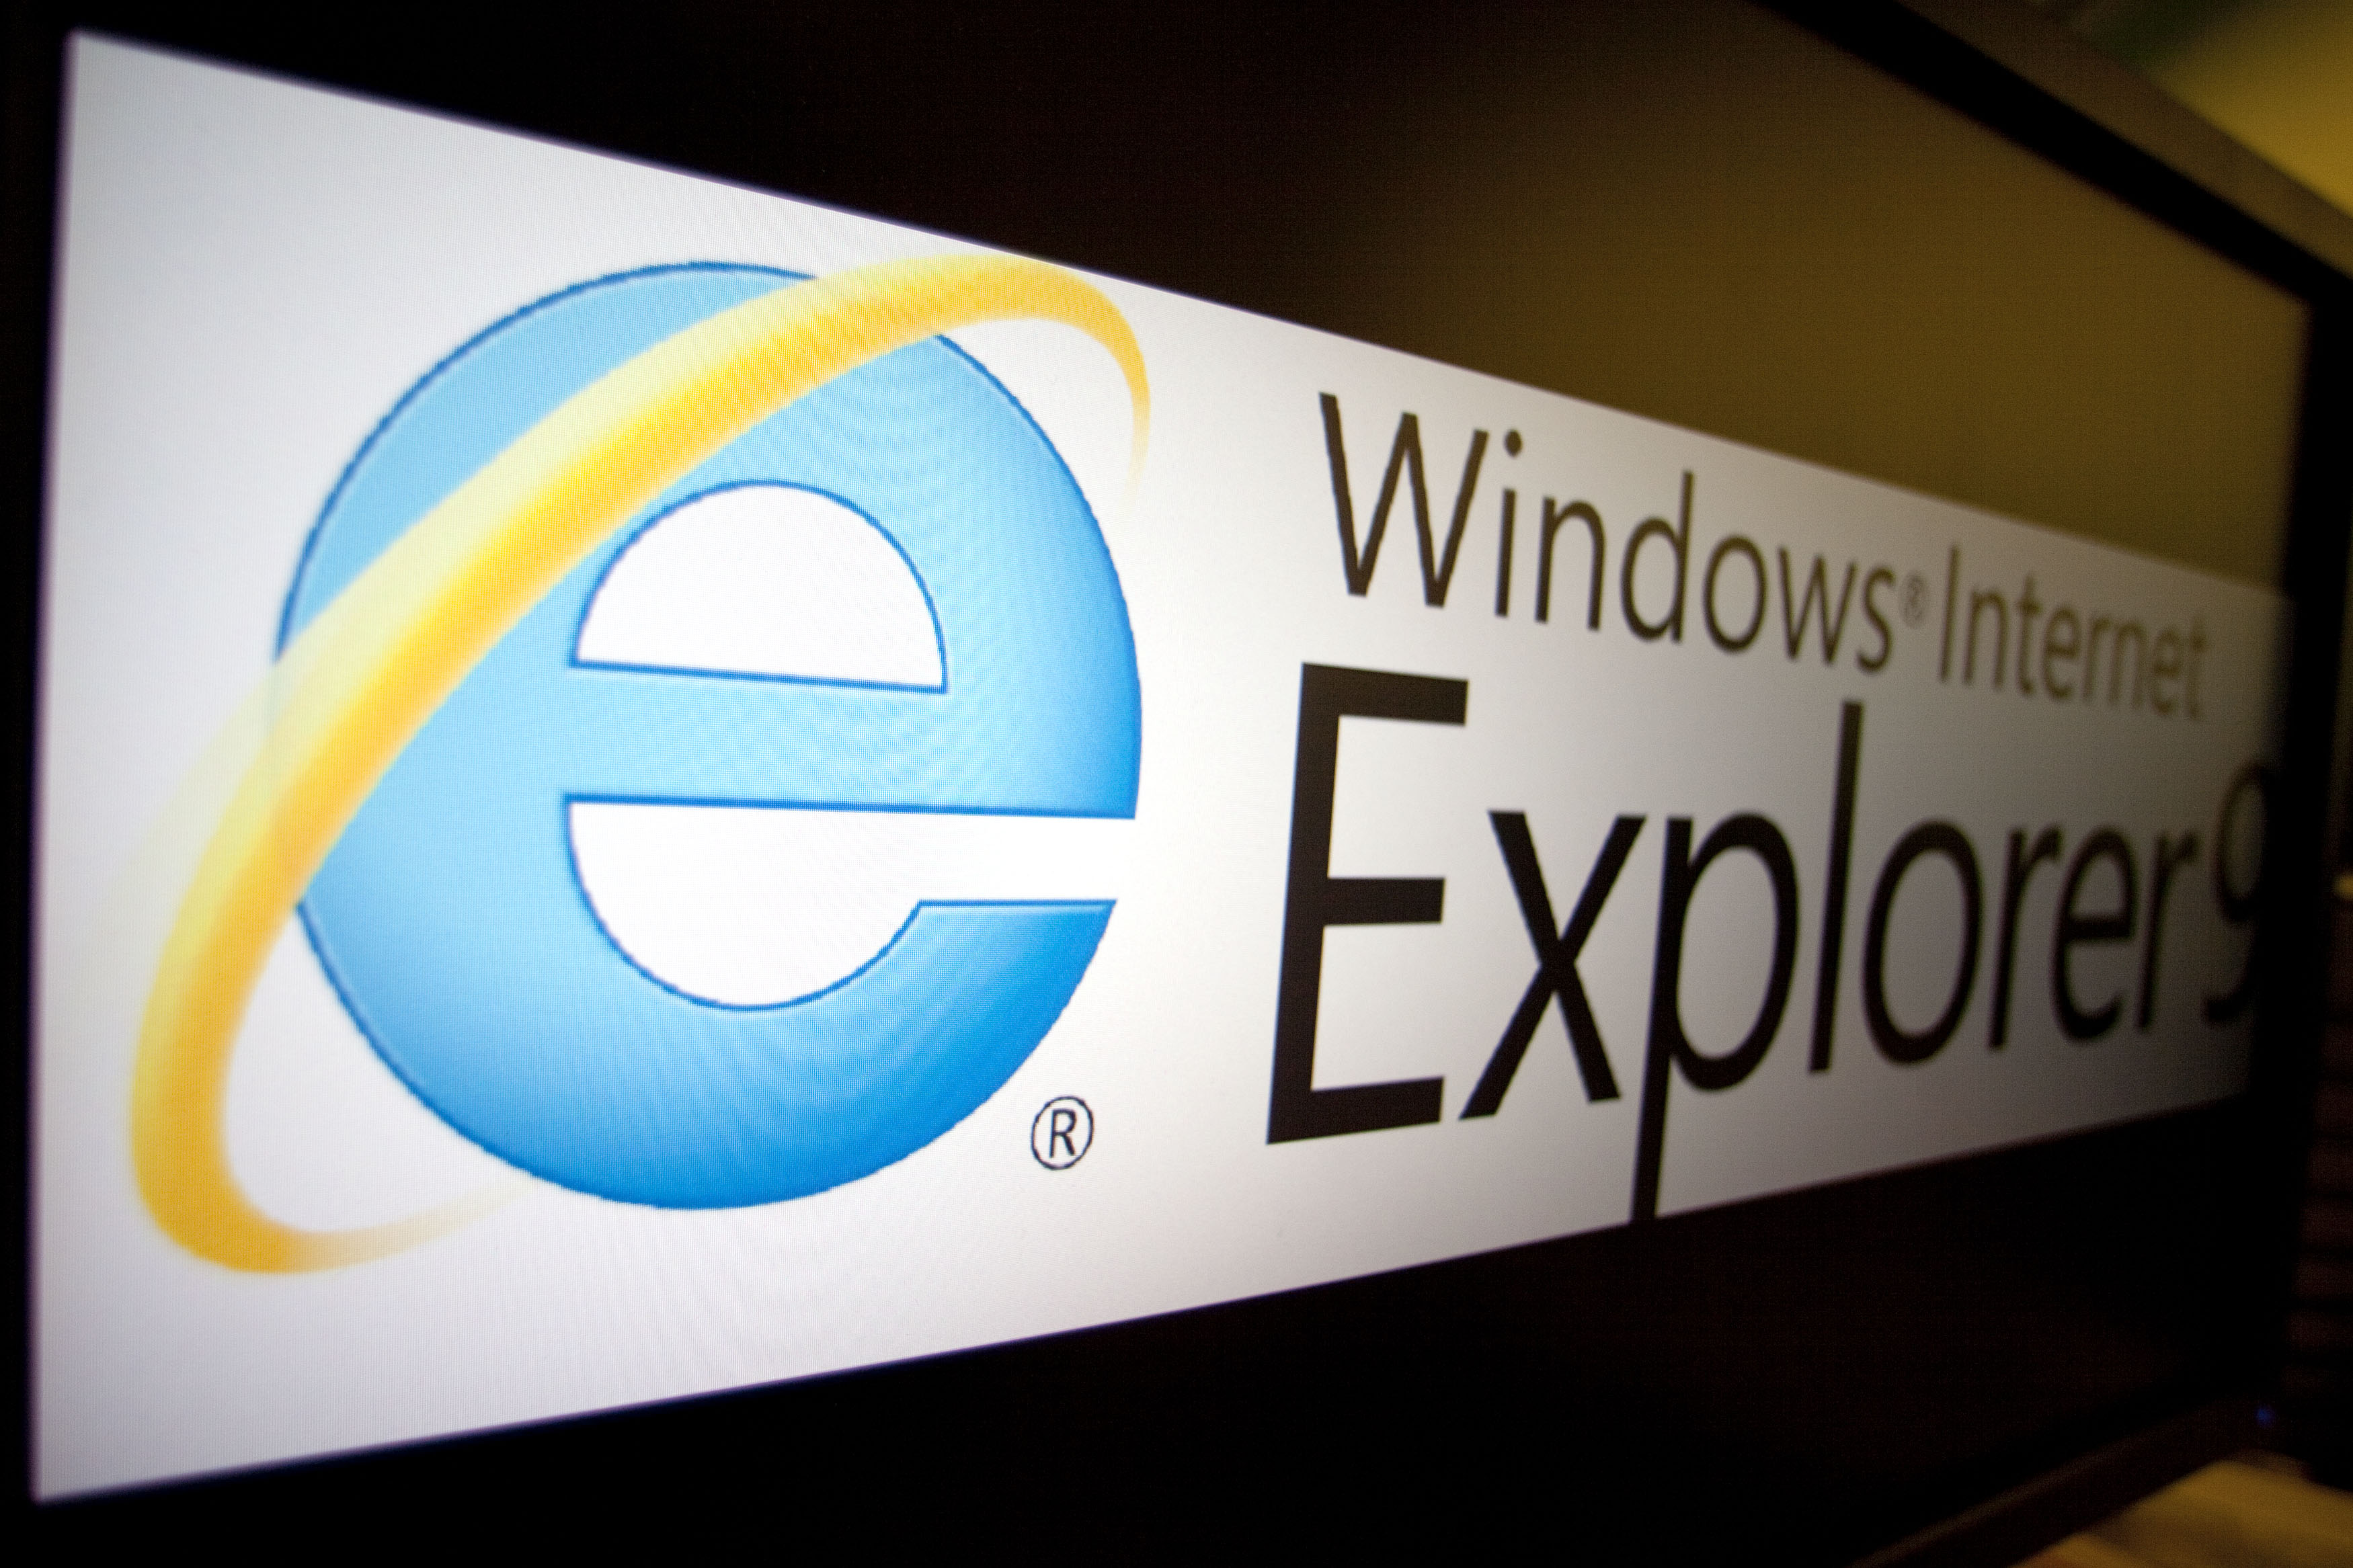 The logo of Microsoft Corp.'s Internet Explorer 9 is displayed on a computer monitor in Washington, D.C., U.S., on Tuesday, March 15, 2011.